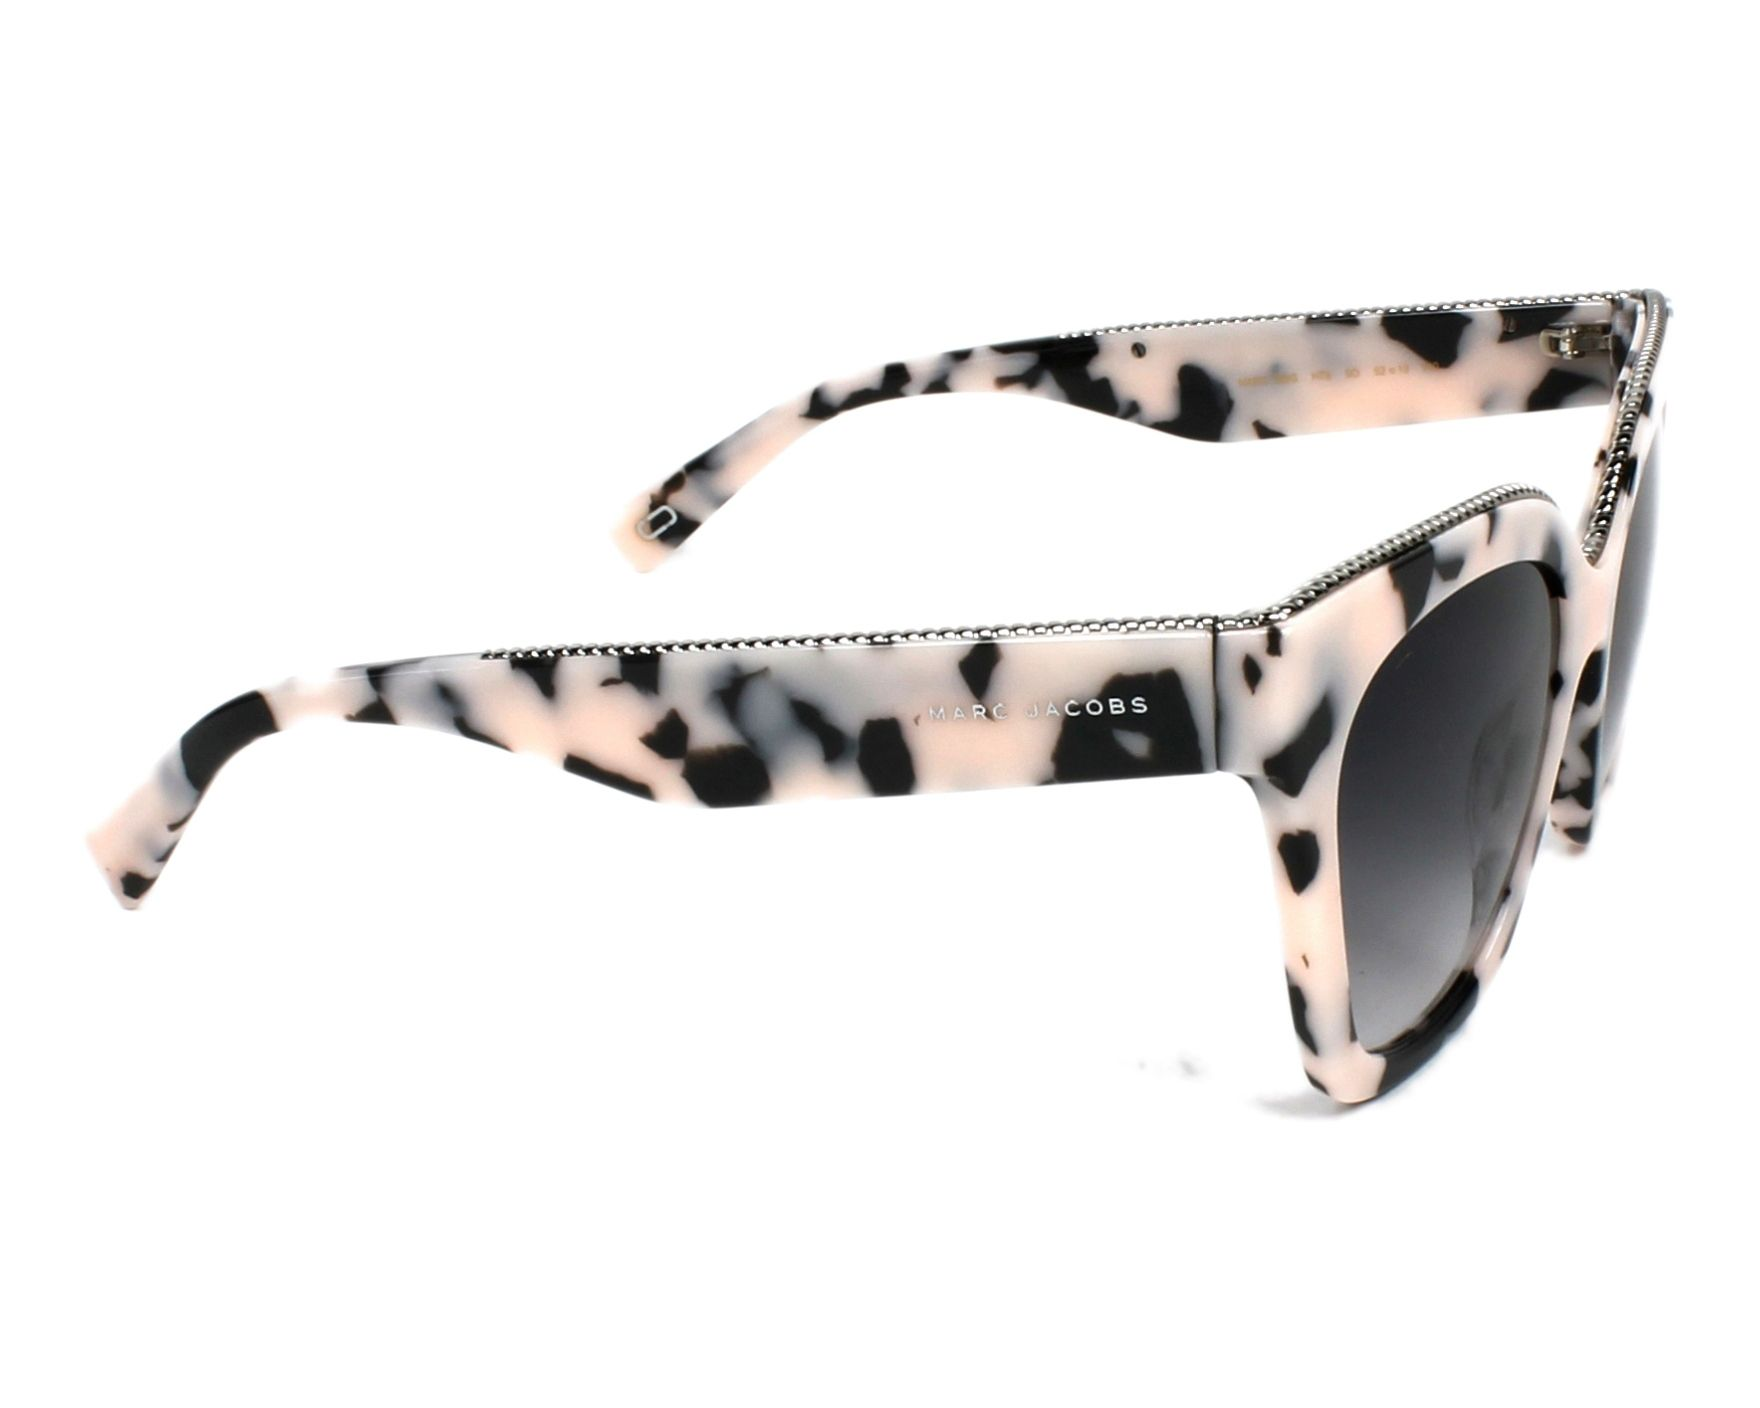 dadaf2fd0dcff Sunglasses Marc Jacobs MARC-162-S HT8 9O - Rosa Silver side view